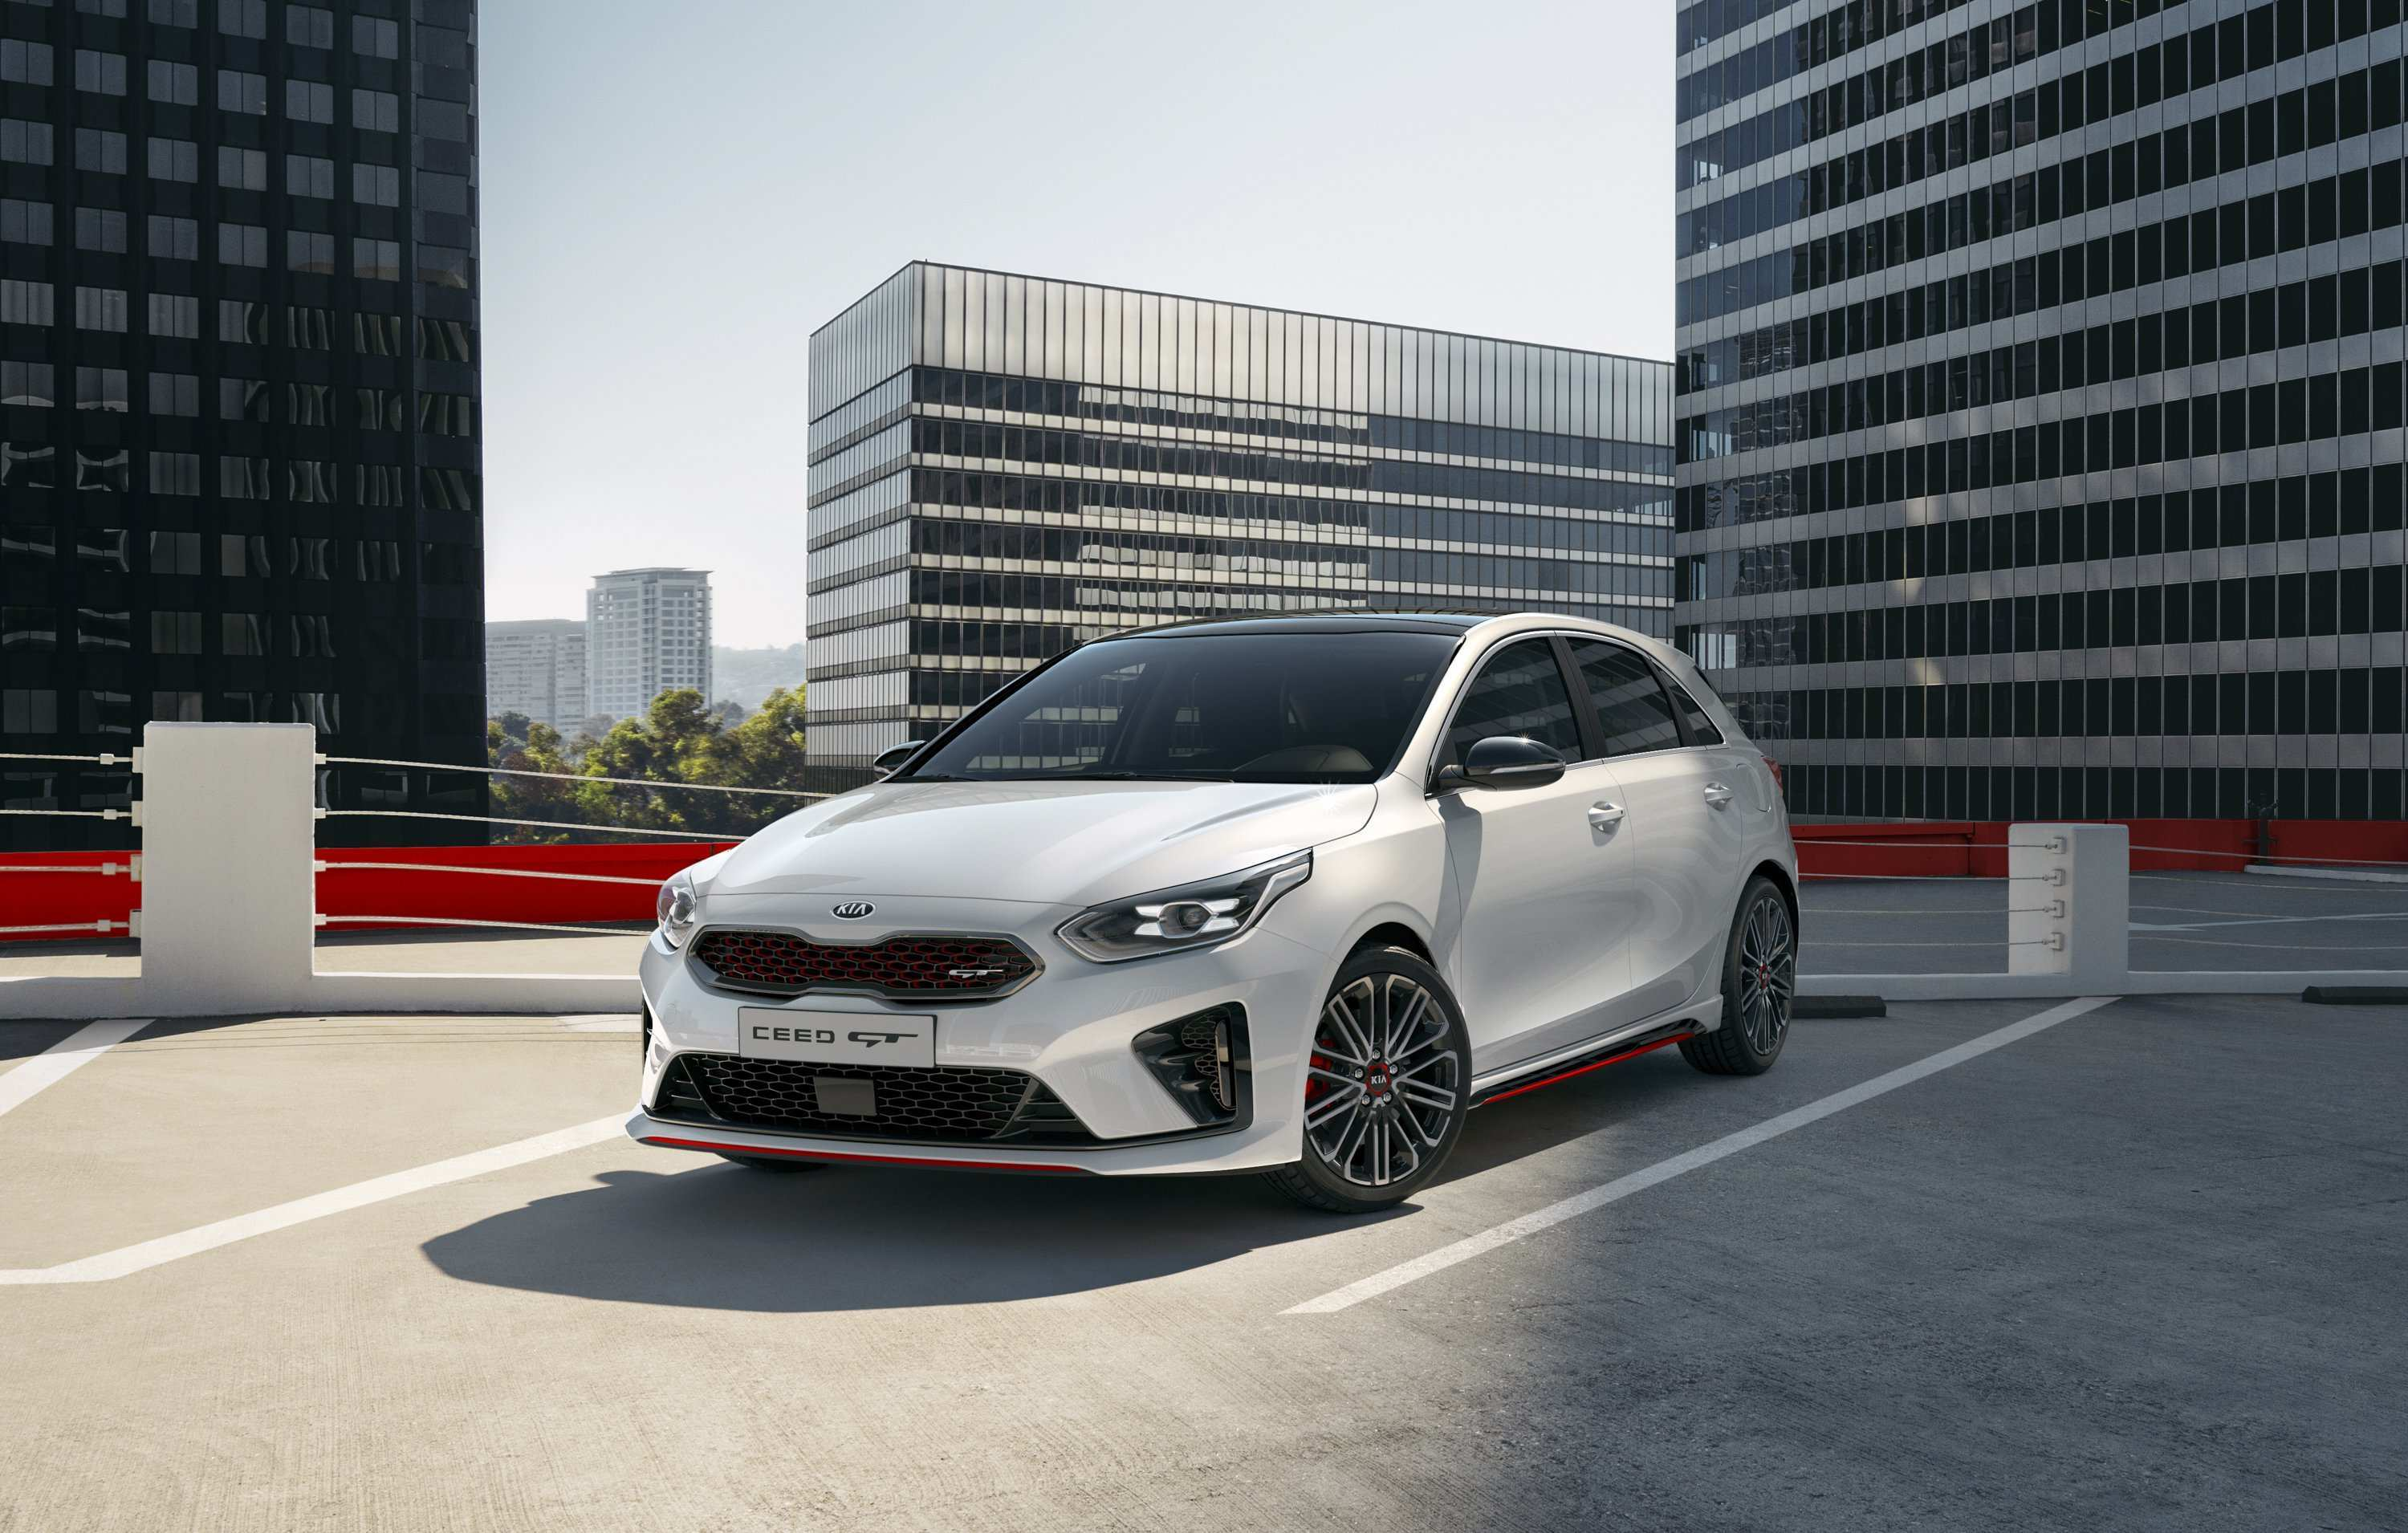 79 All New 2019 Kia Gt Coupe Configurations with 2019 Kia Gt Coupe